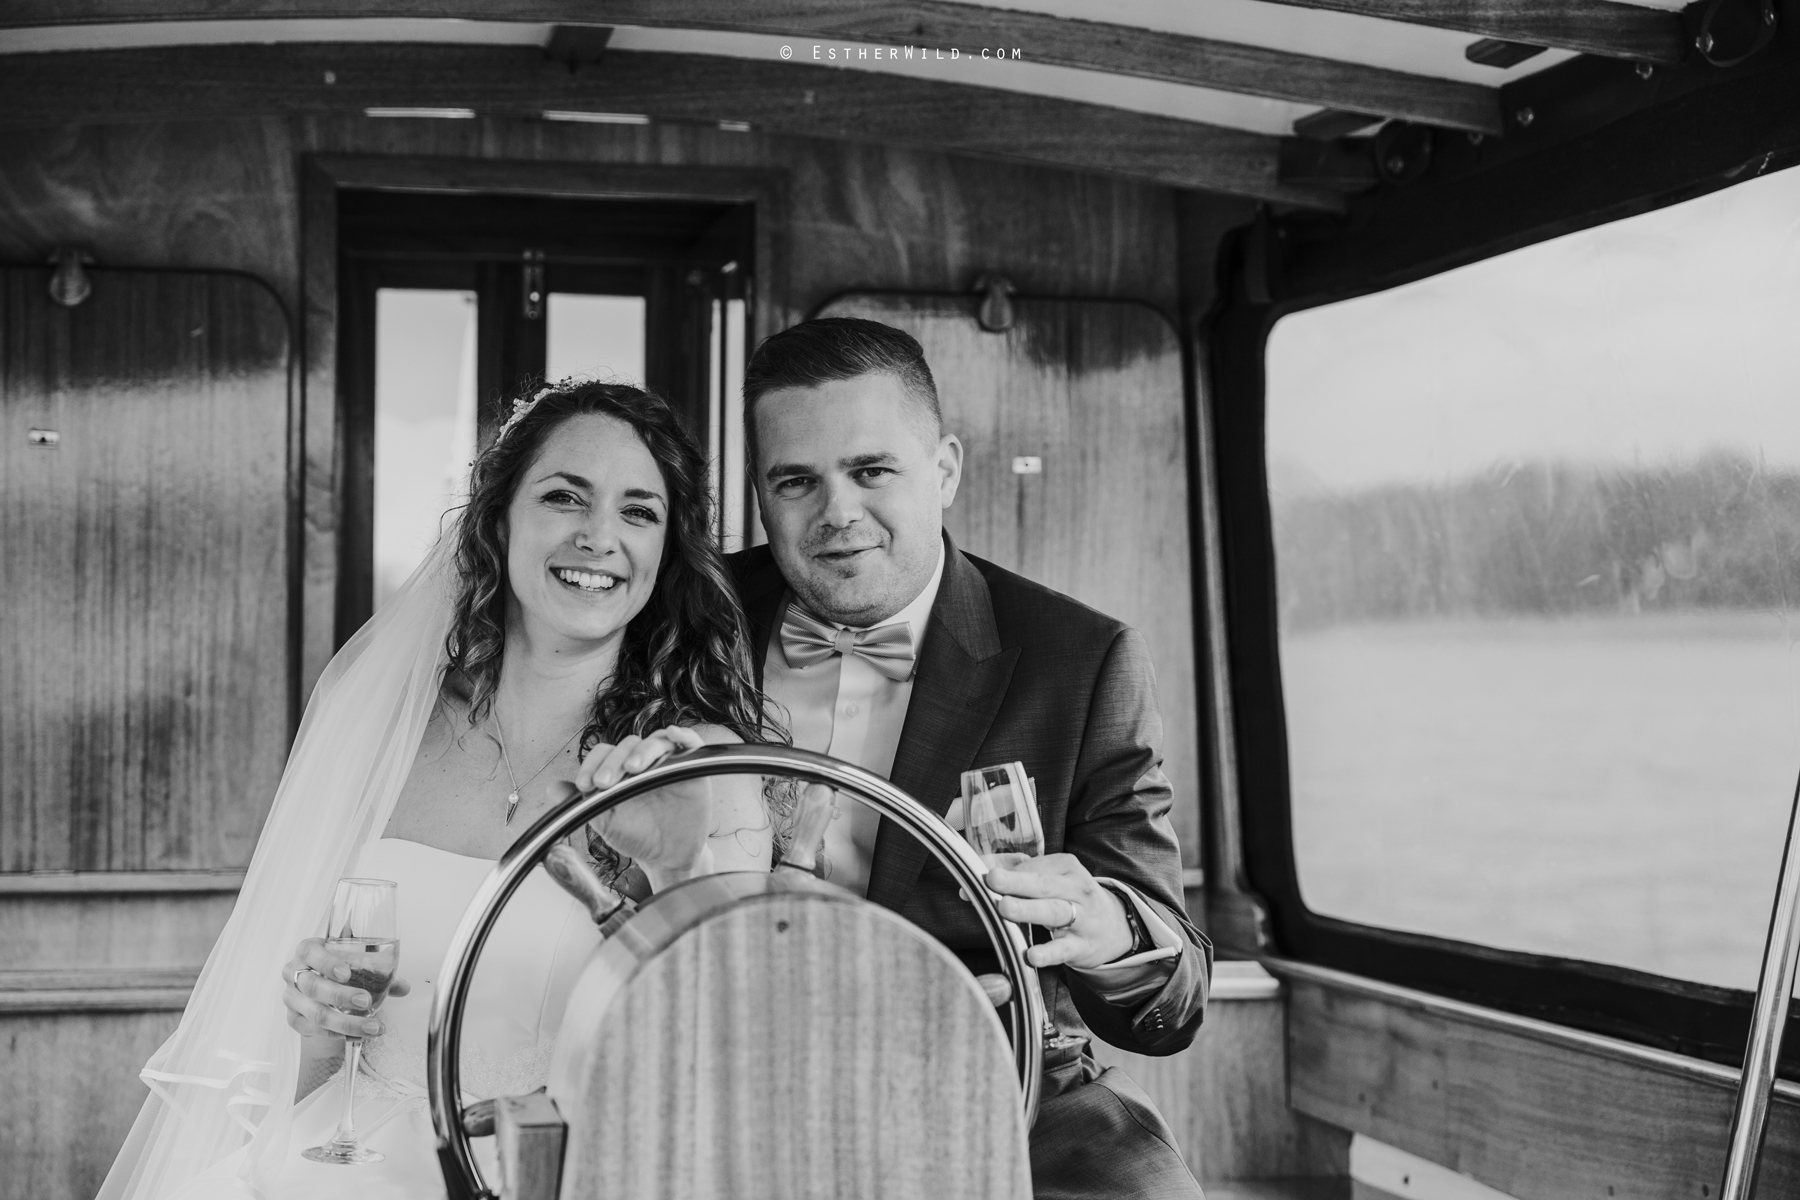 The_BoatHouse_Wedding_Venue_Ormesby_Norfolk_Broads_Boat_Wedding_Photography_Esther_Wild_Photographer_IMG_1550-2.jpg